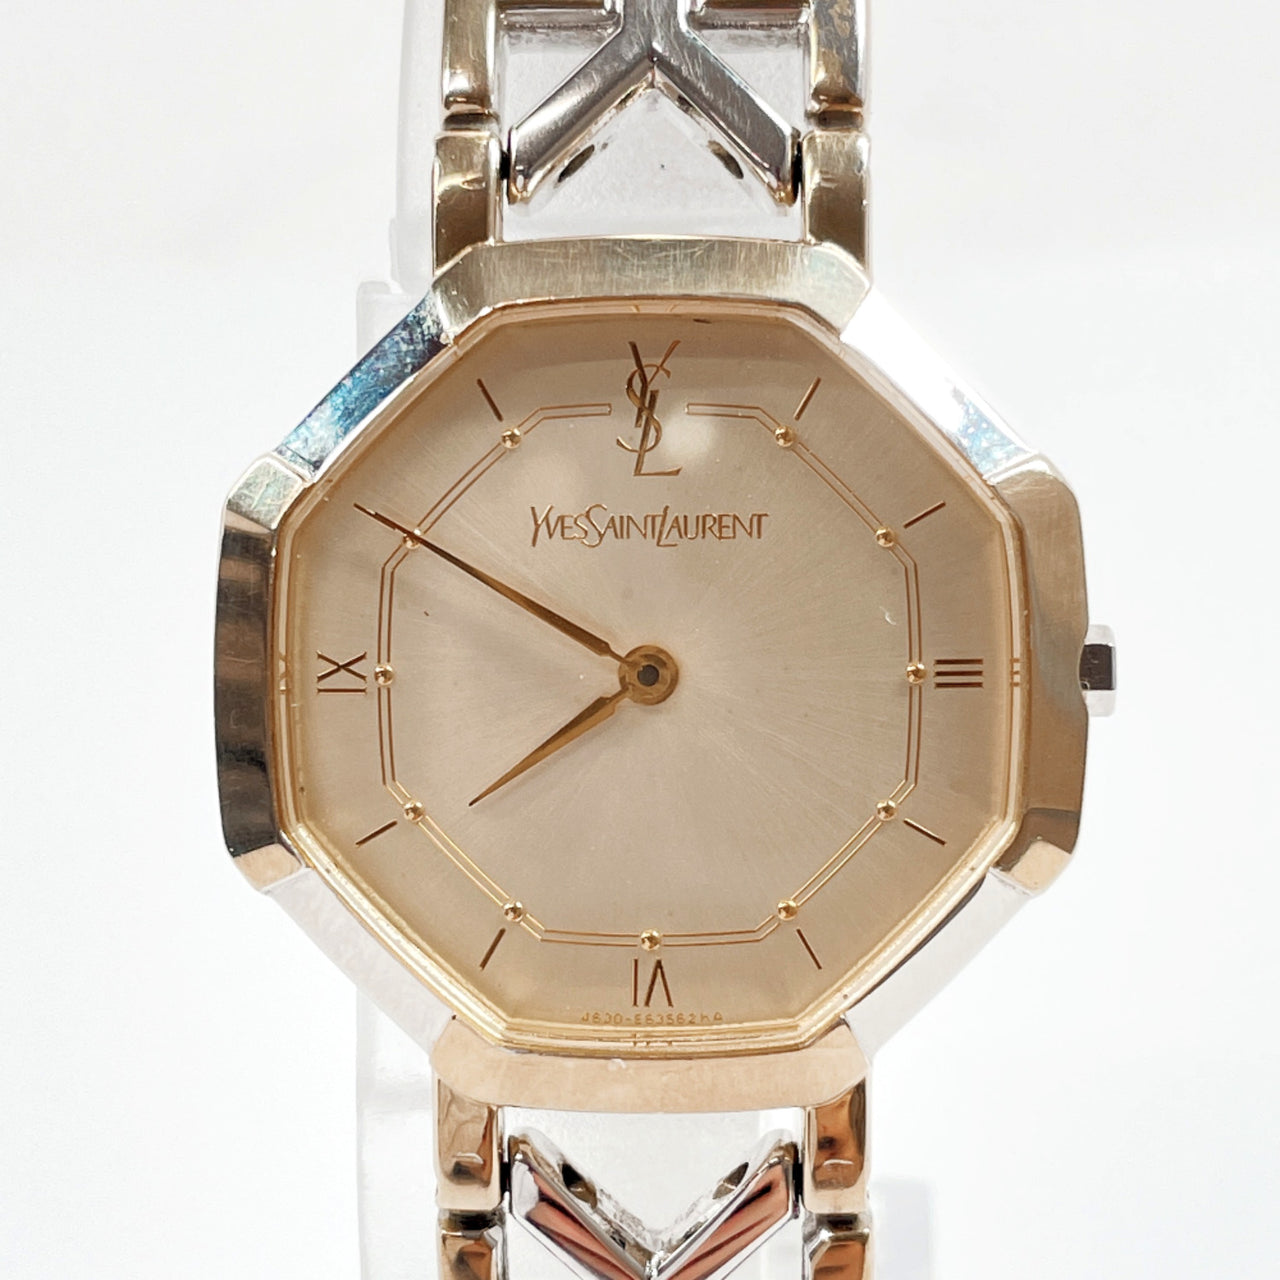 YVES SAINT LAURENT Watches 4620-E62143 quartz Stainless Steel gold Silver Women Used